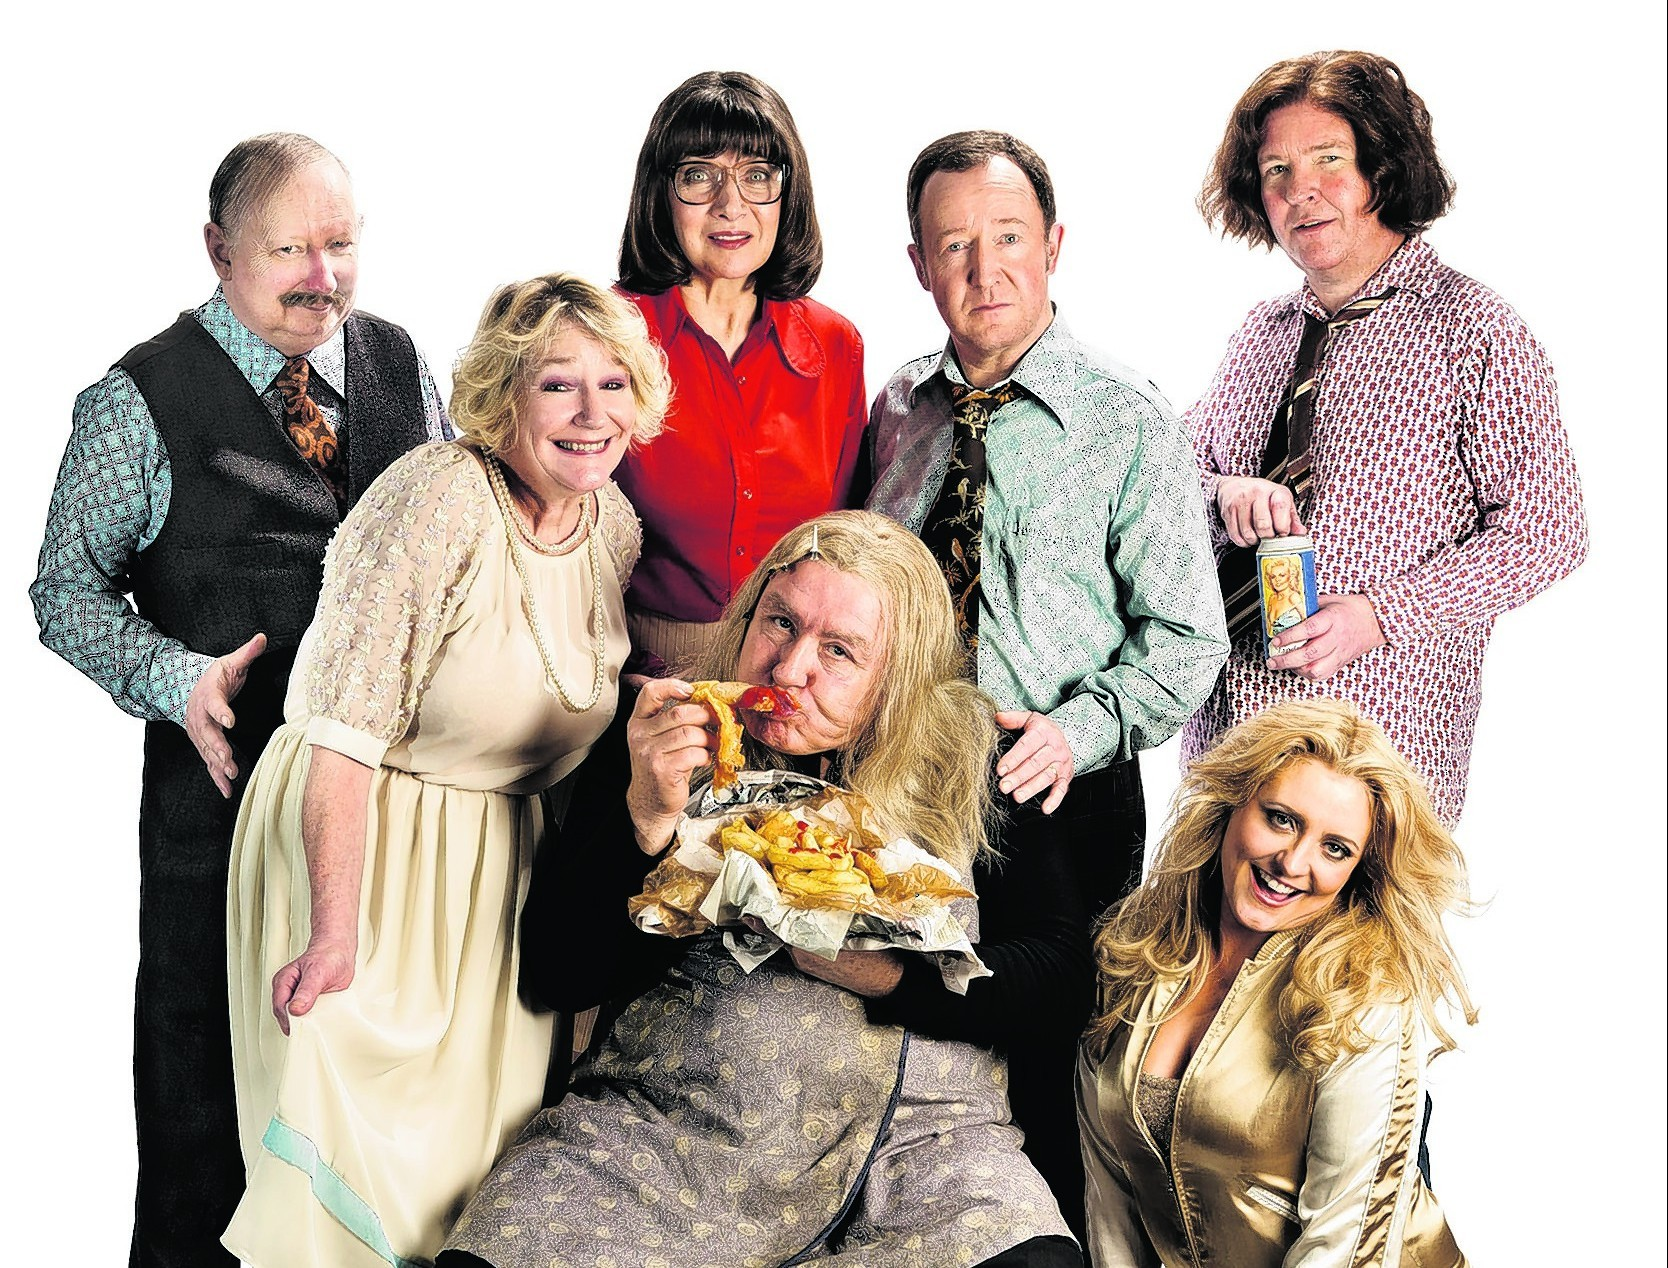 The star-studded cast, back row, from left: Brian Pettifer, Maureen Beattie, Jonathan Watson and Paul Riley.  Front row, from left: Barbara Rafferty, Gregor Fisher  and Louise McCarthy. PHOTO: Eoin Carey